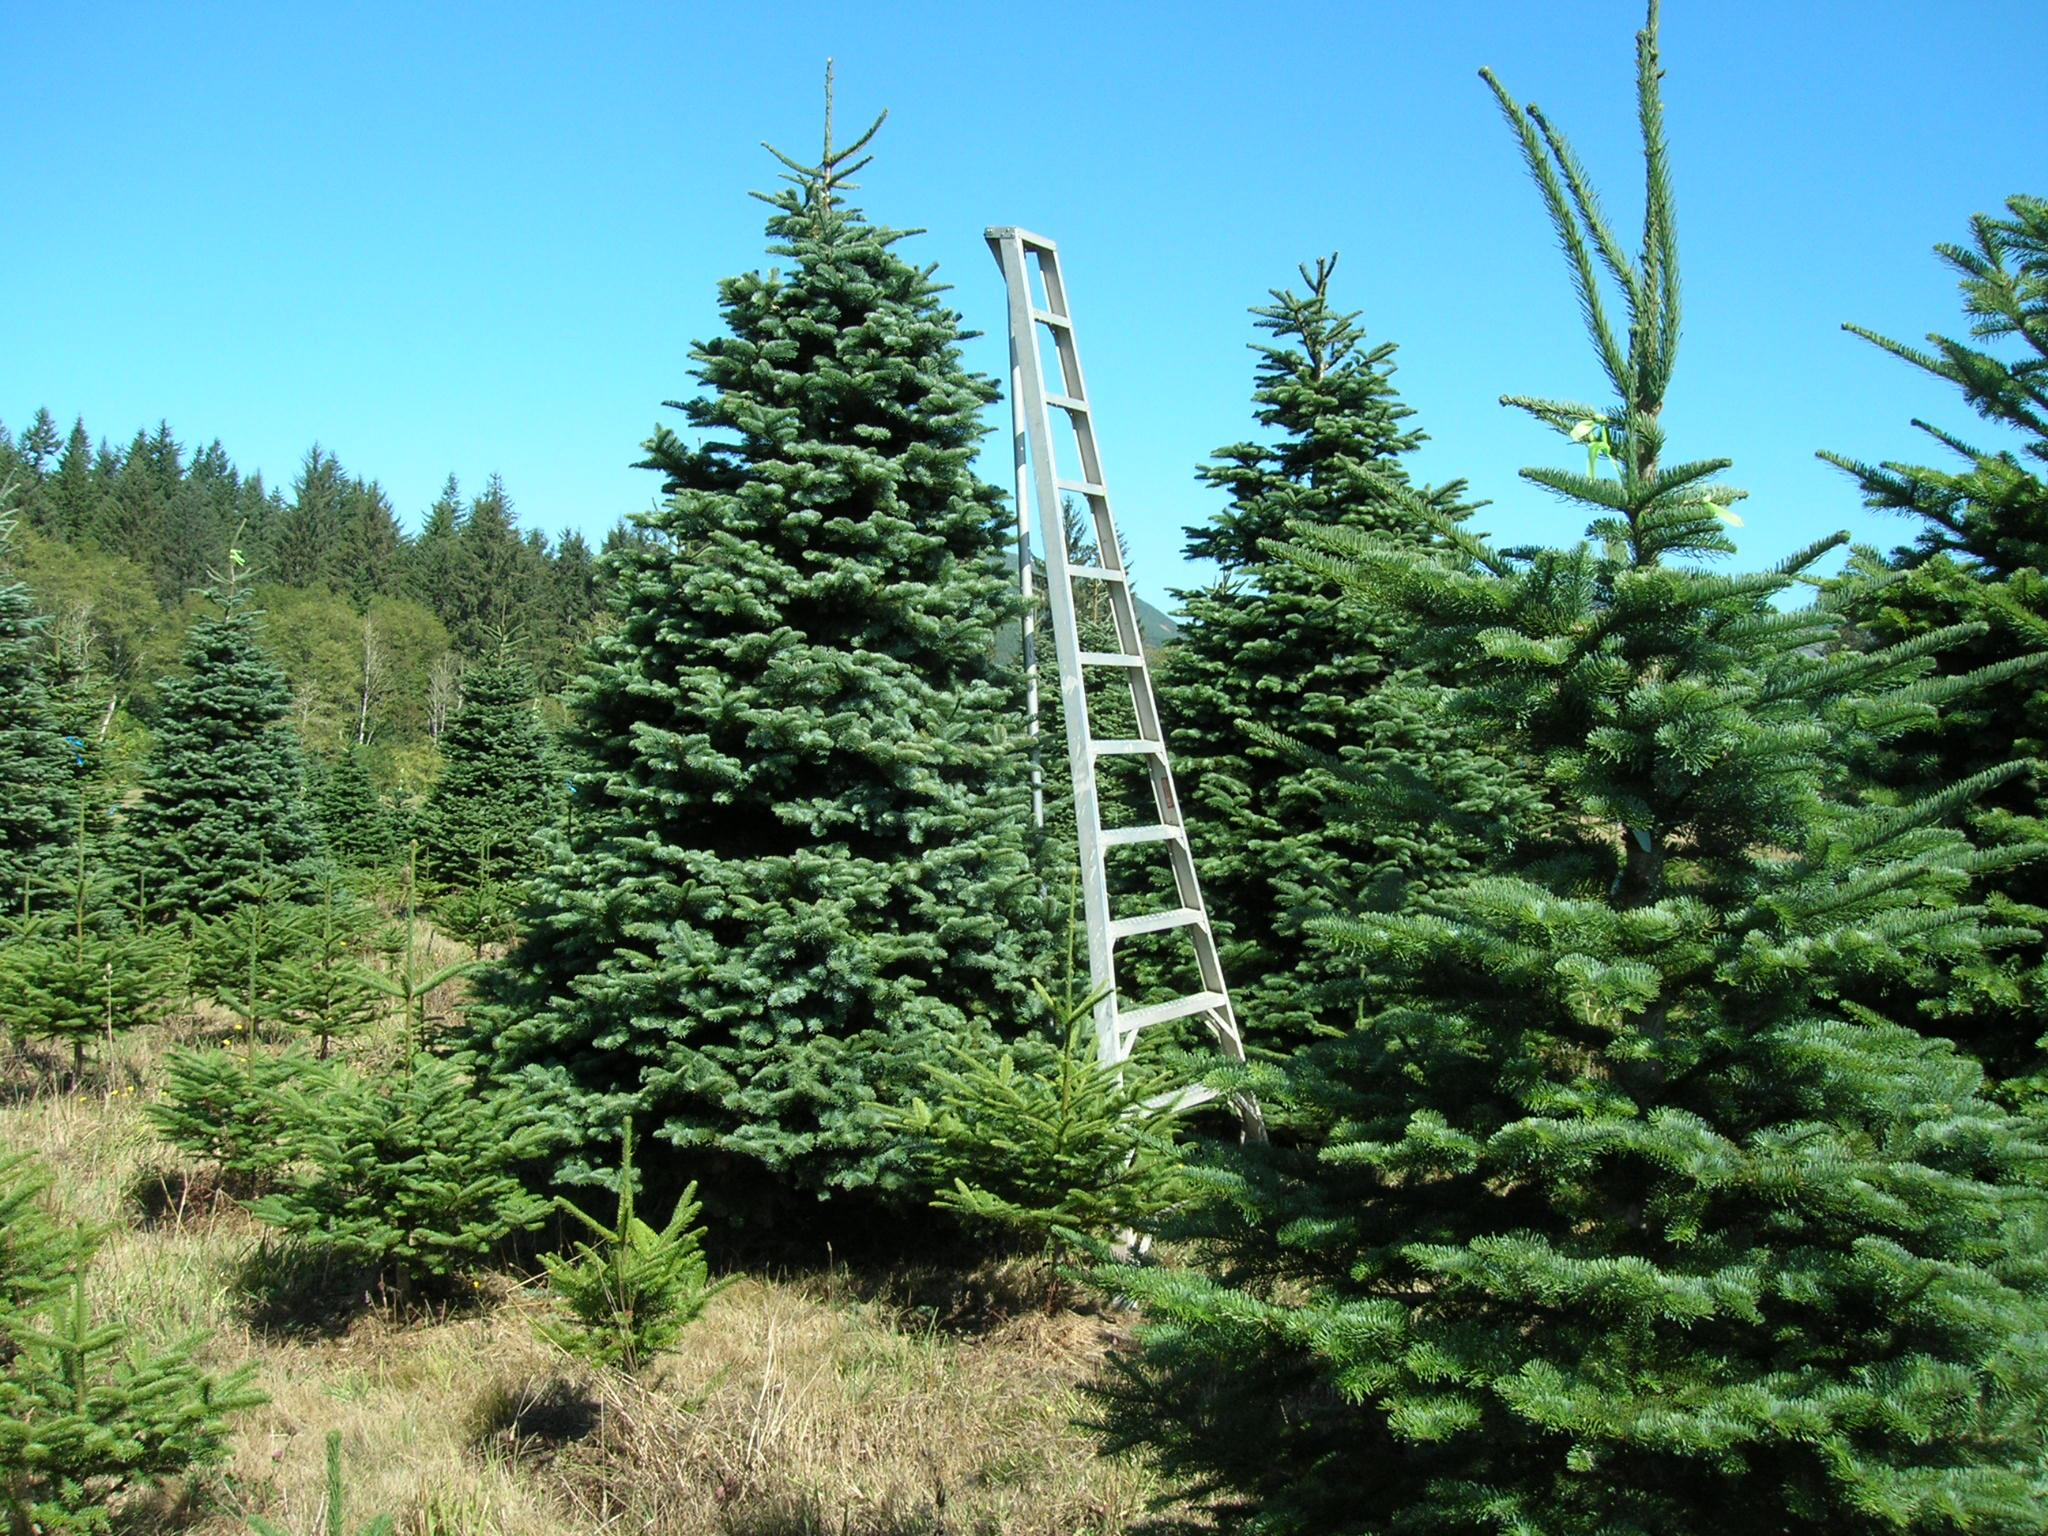 U Cut Christmas Trees and Wreaths - Tim Miller Farms